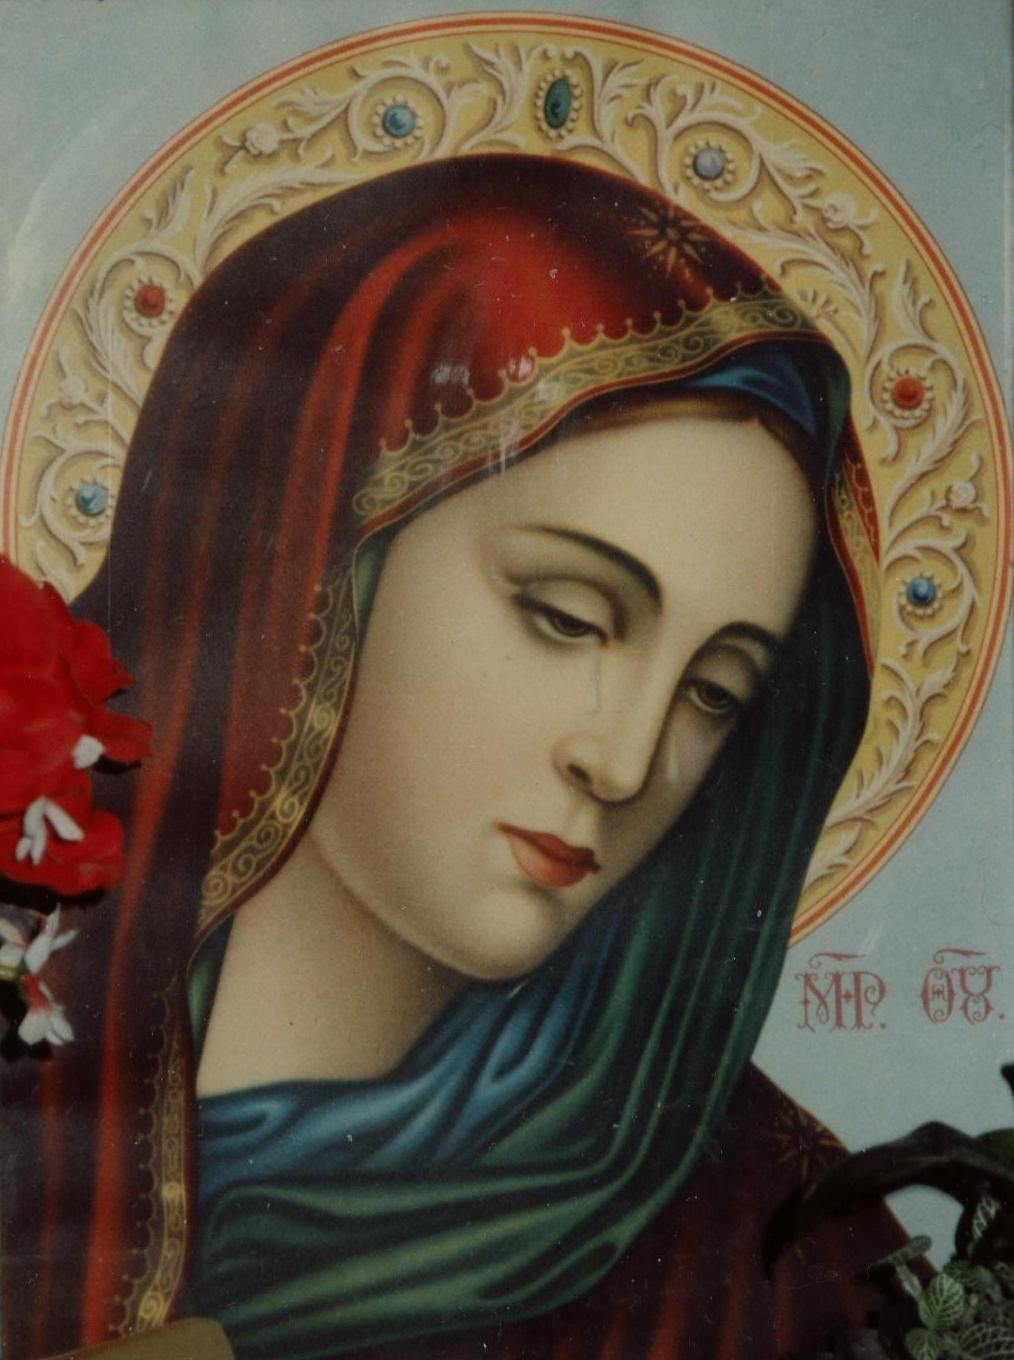 Our Lady of Tears.* Arielle Gabriel writes of The Goddess of Mercy &* The Dept of Miracles her true story of financial disaster and fall from grace in Hong Kong, and ensuing miracles *